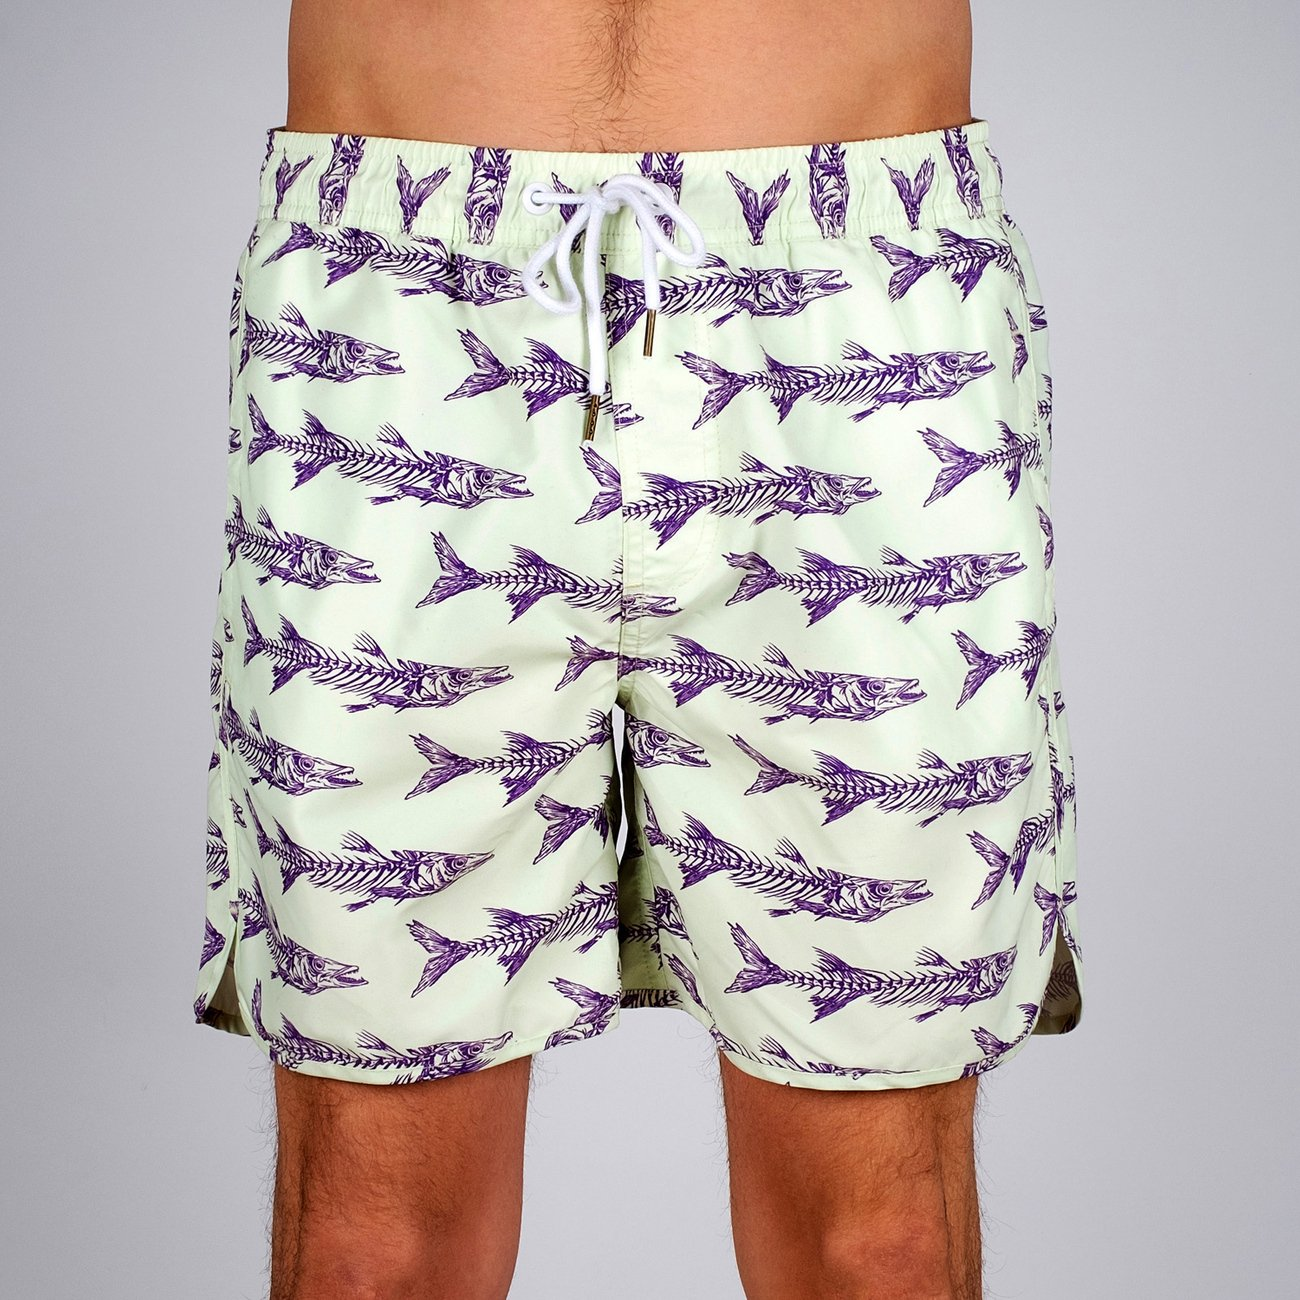 Badshorts Barracuda